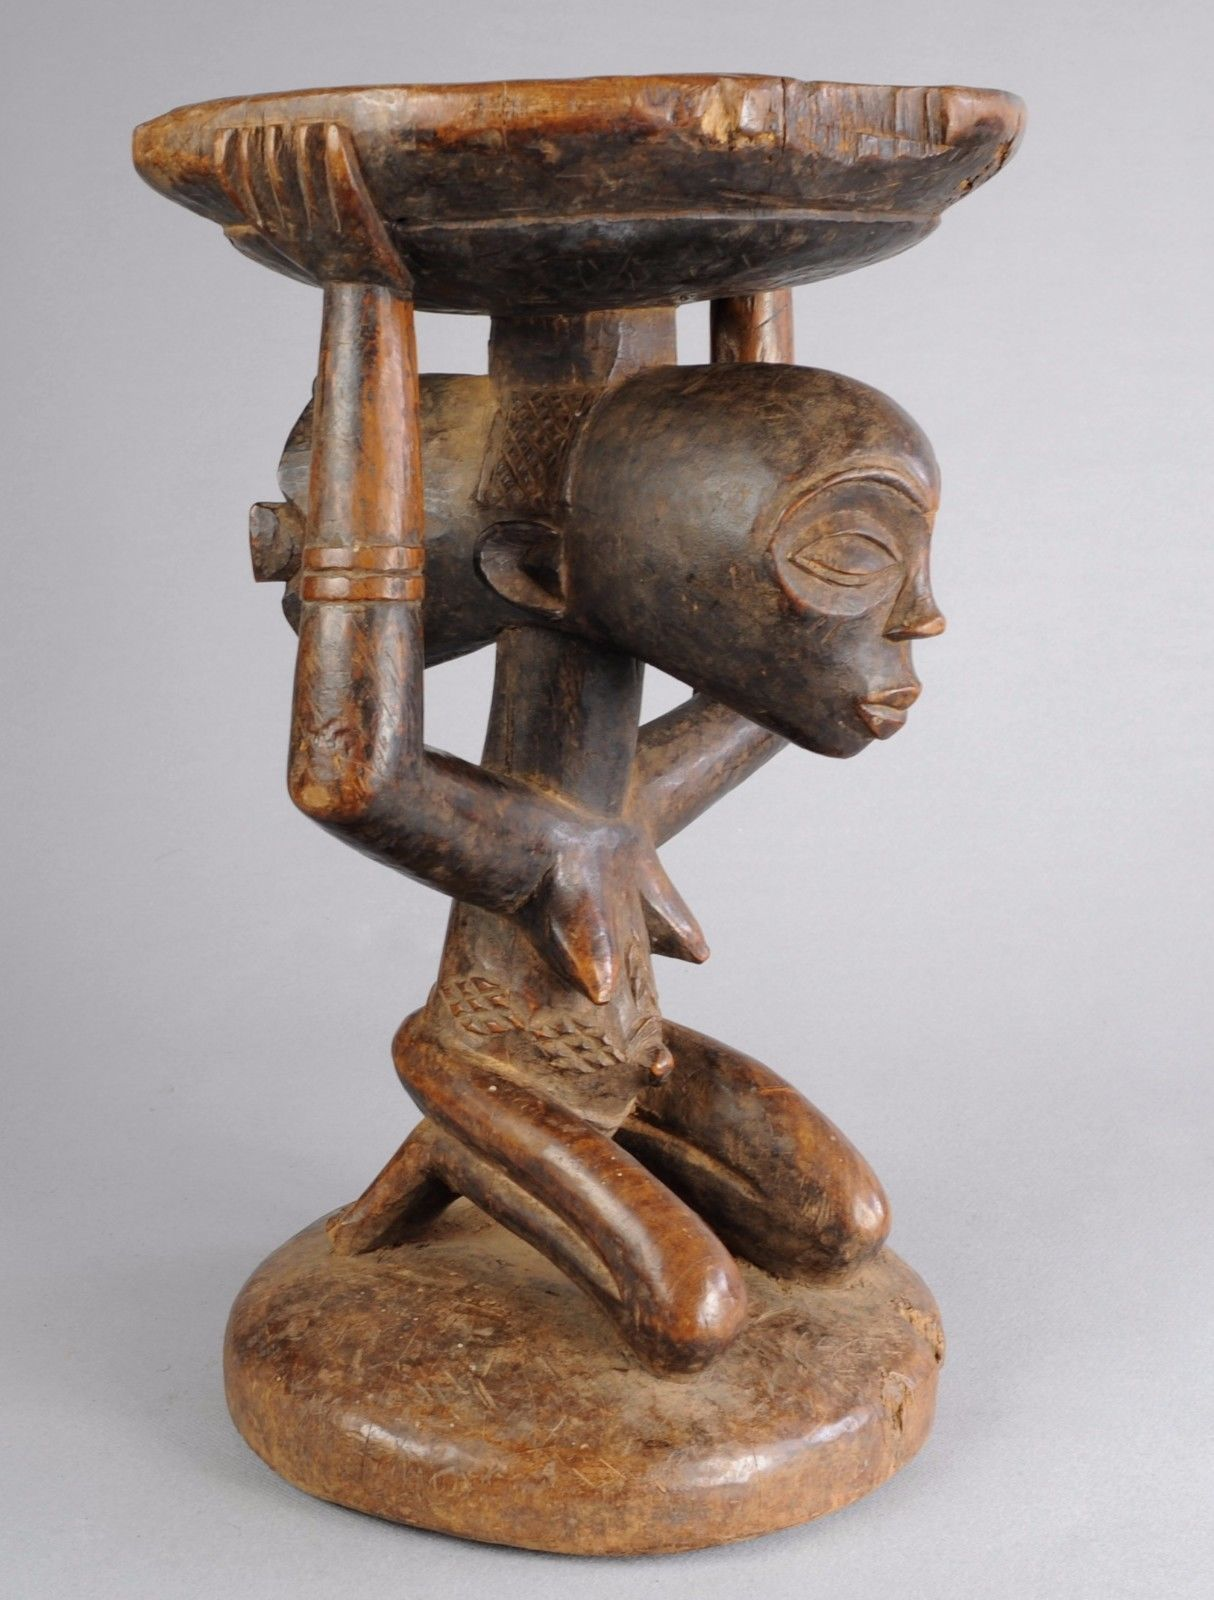 Tabourets Africains Ebay Exquisite Luba Caryatid Stool Tribal Art African Congo Drc